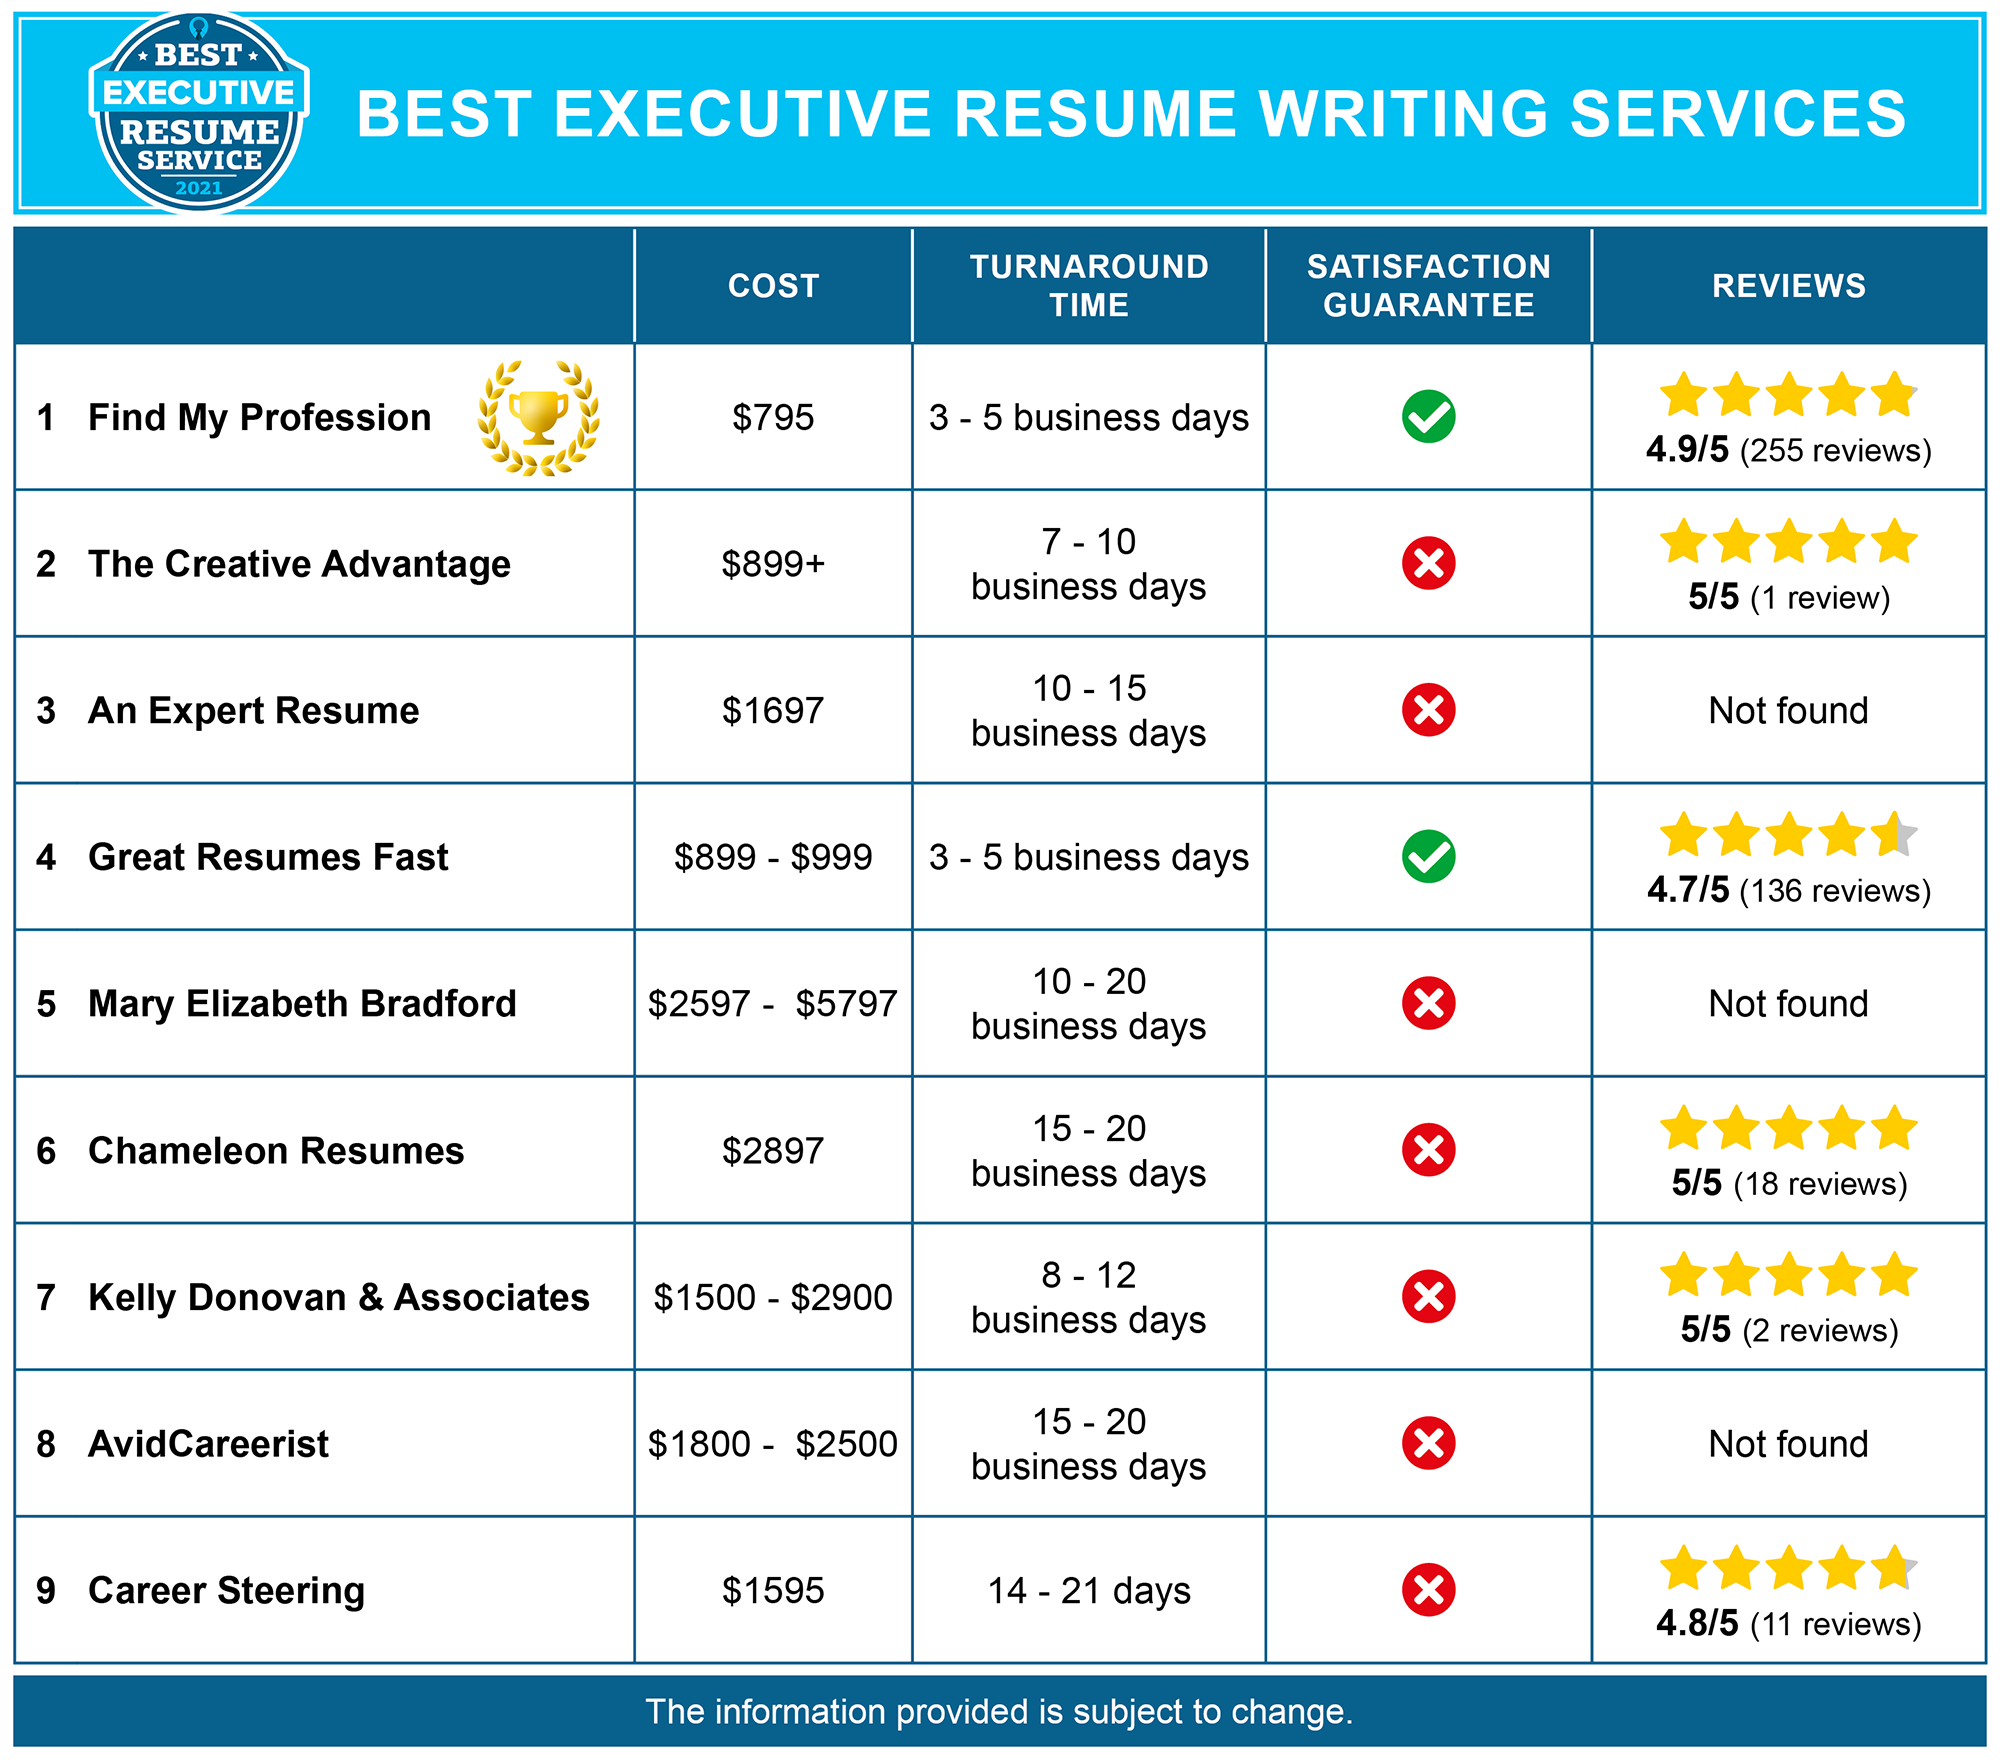 Best Executive Resume Services